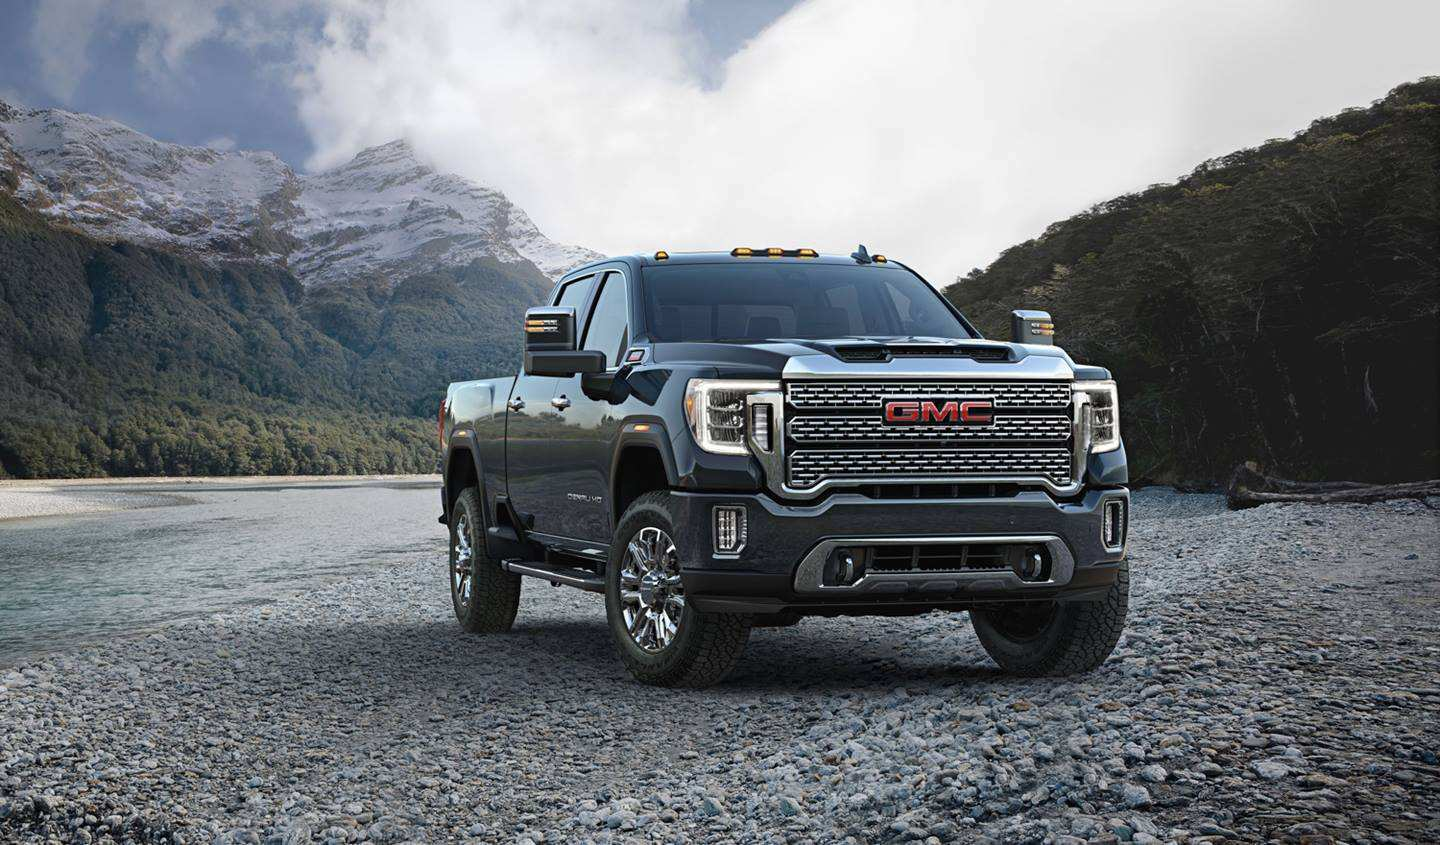 56 Gallery of 2020 Gmc Sierra Hd Interior Spy Shoot for 2020 Gmc Sierra Hd Interior